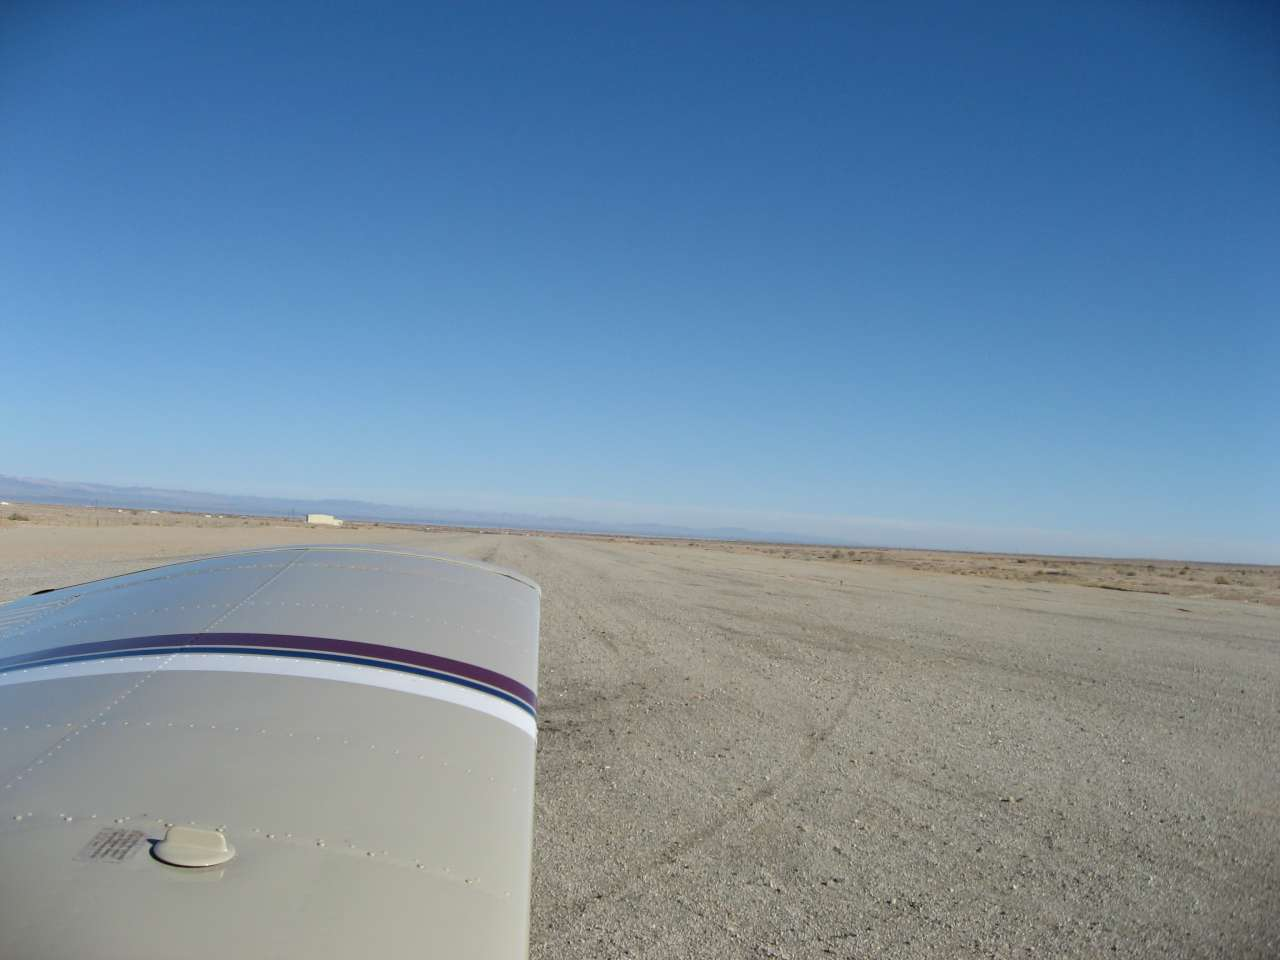 Saltant Sea Airport Gravel Runway